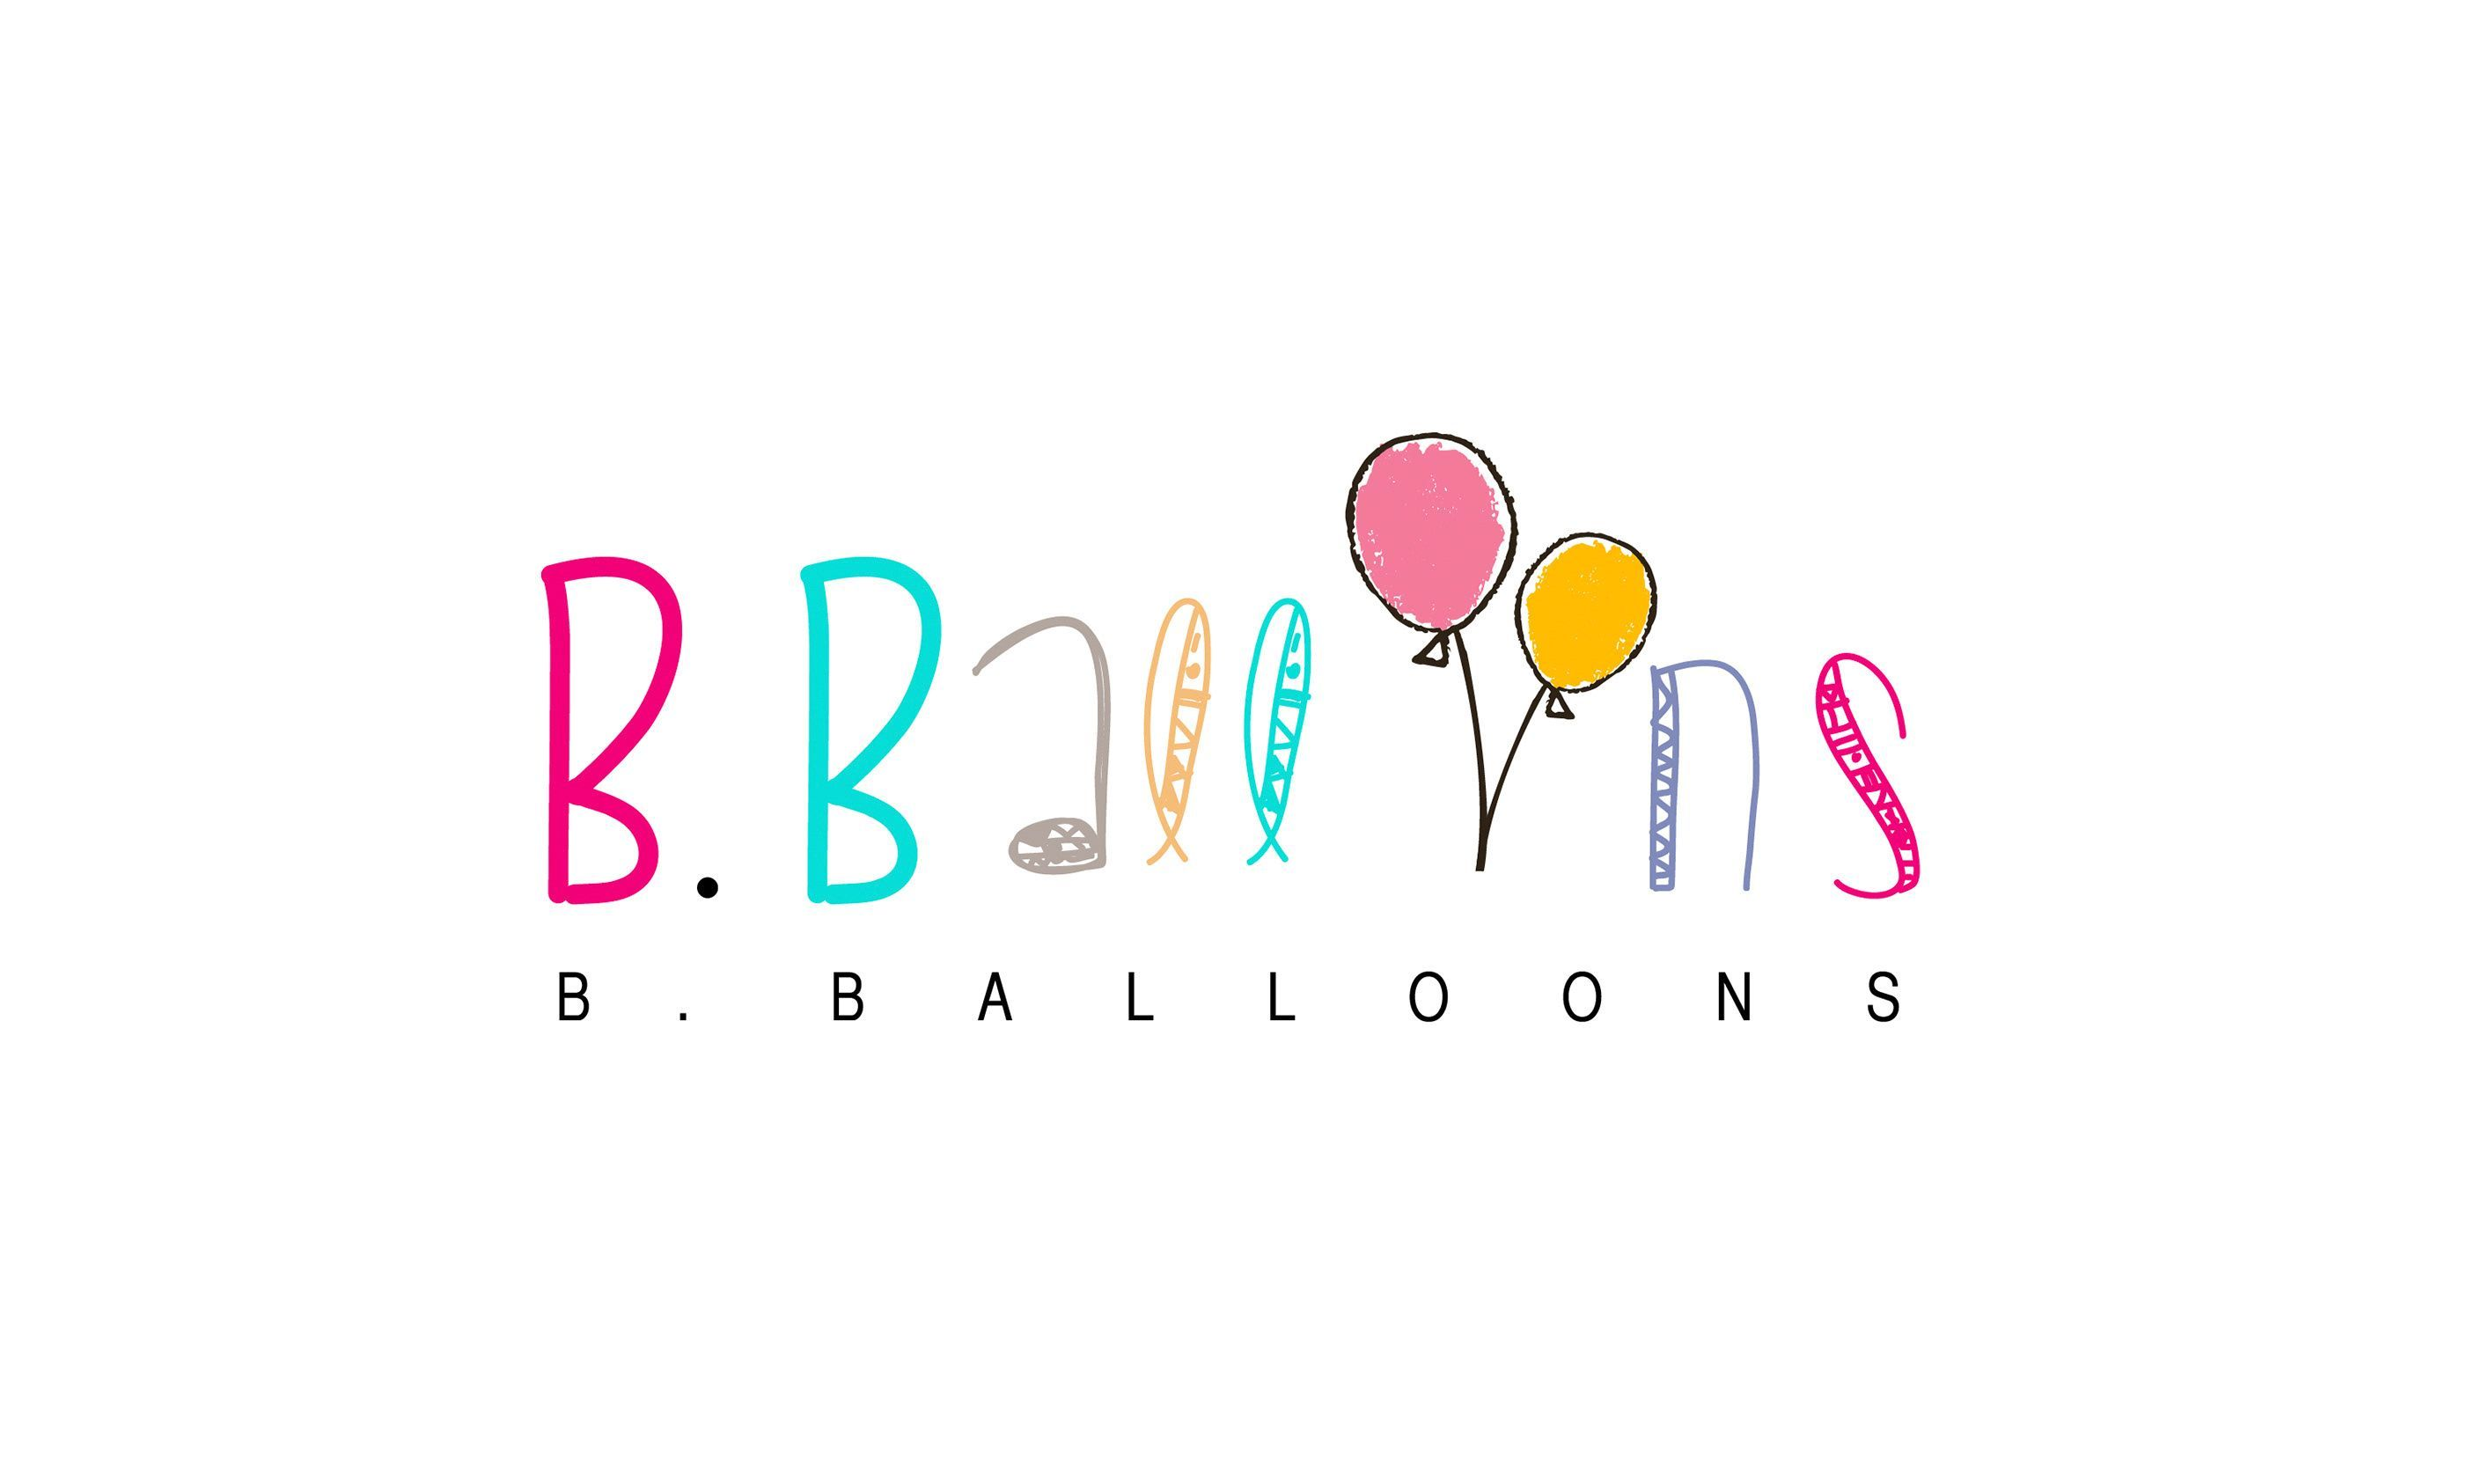 Pin by violet32hart60 on balloon in 2020 Balloon logo